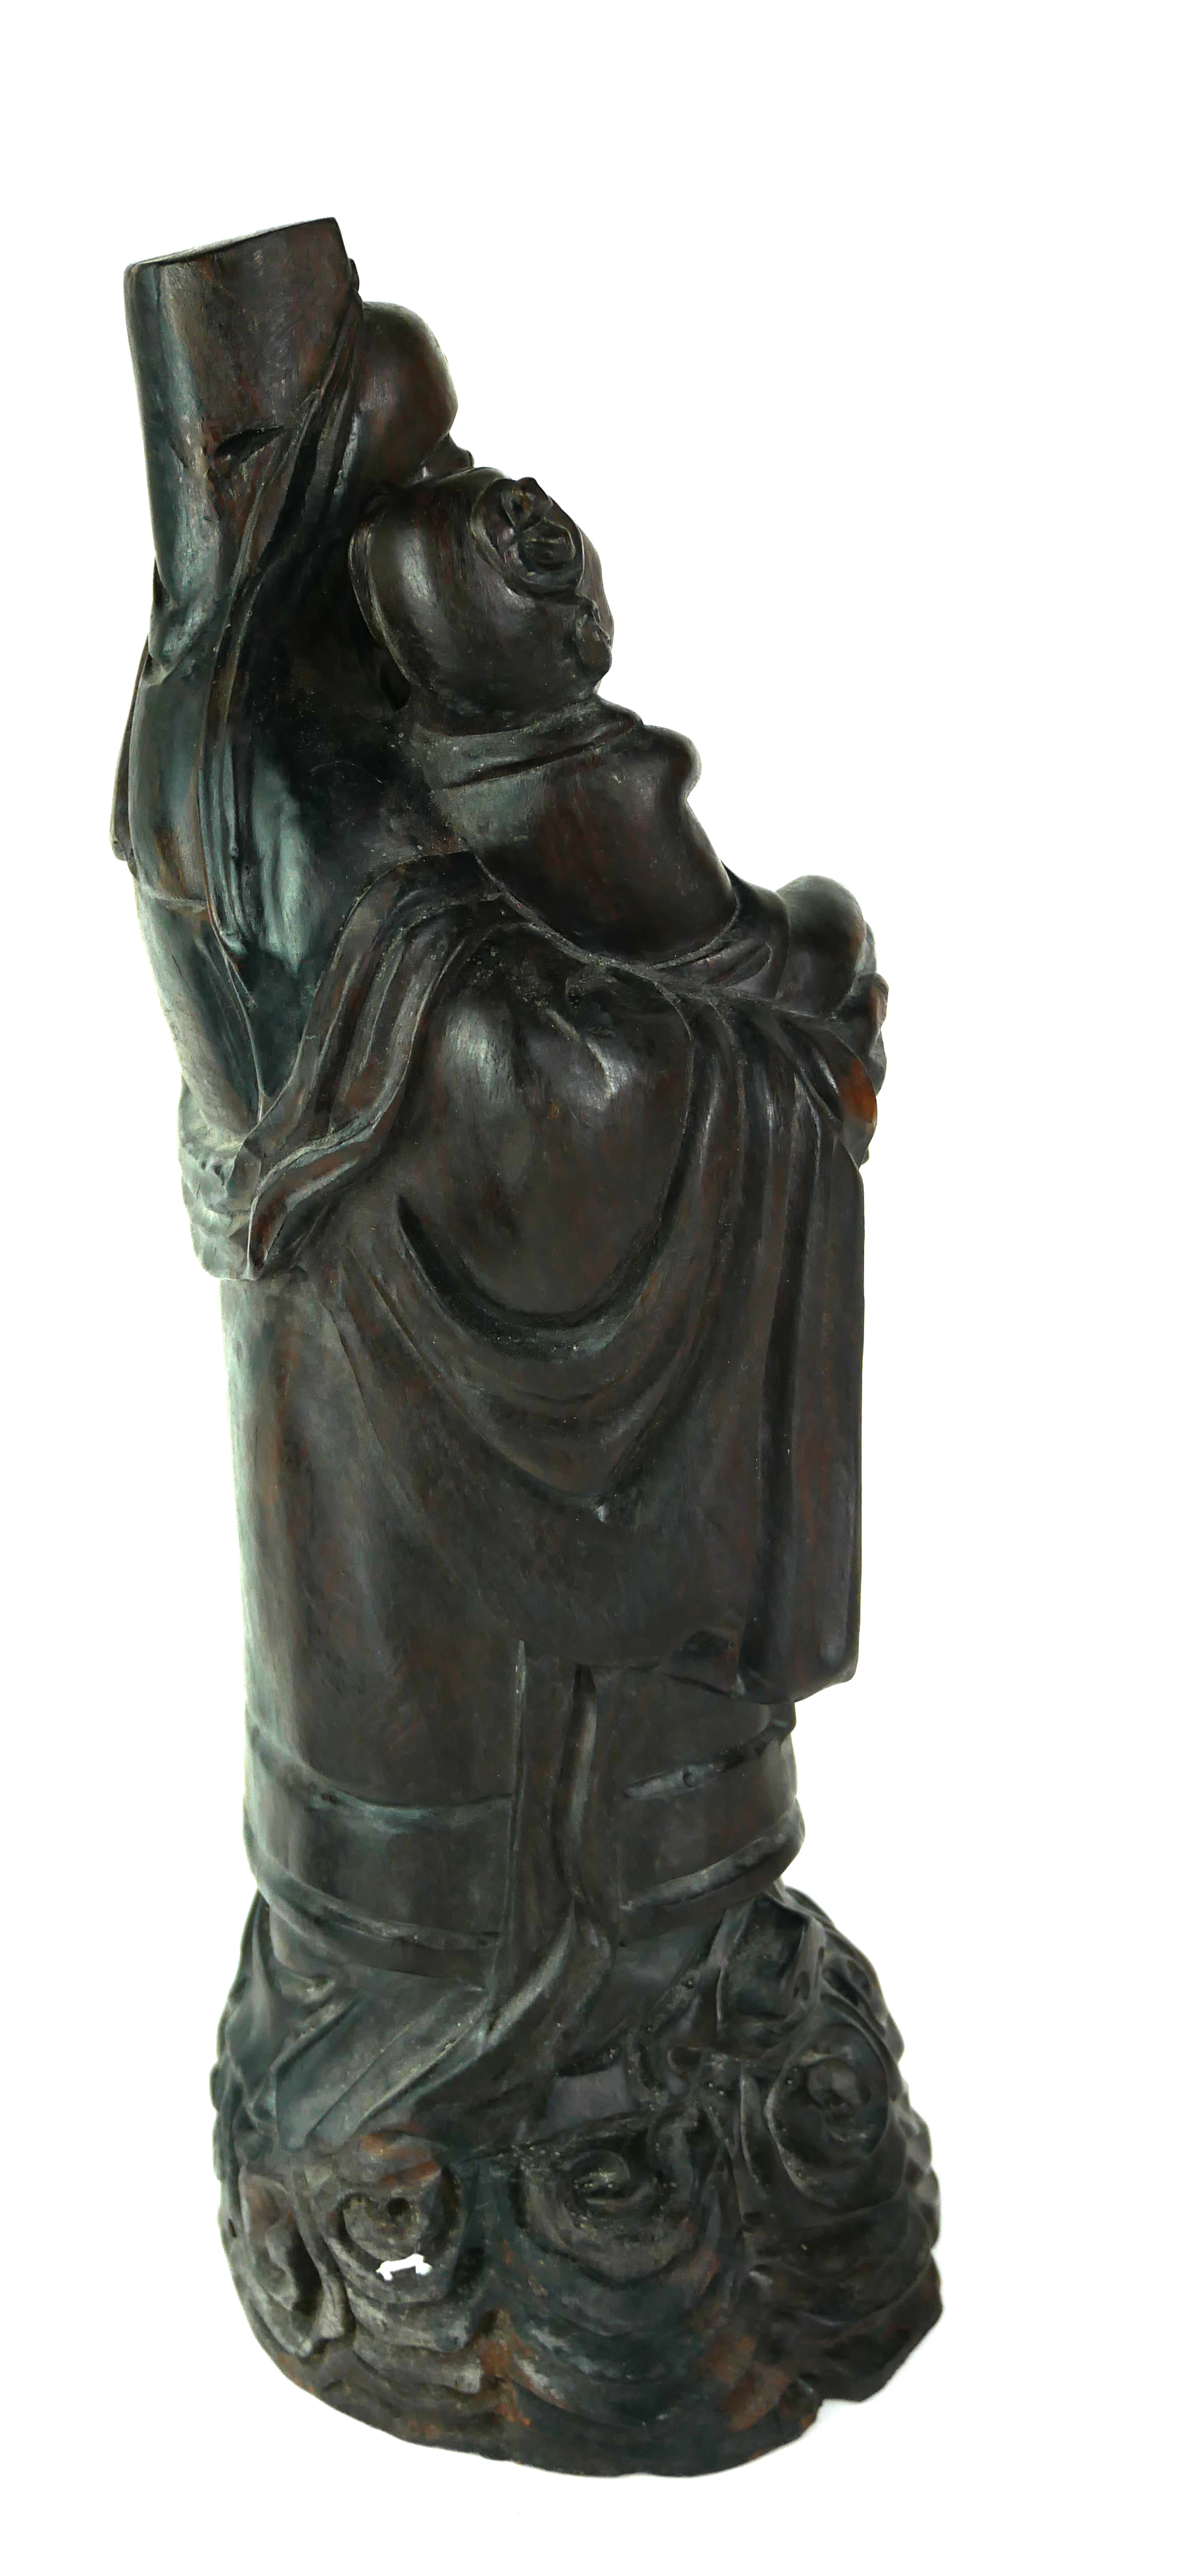 AN EARLY 20TH CENTURY CHINESE ROSEWOOD GROUP CARVING OF IMMORTAL FIGURE HOLDING A CHILD Raised on - Image 2 of 2